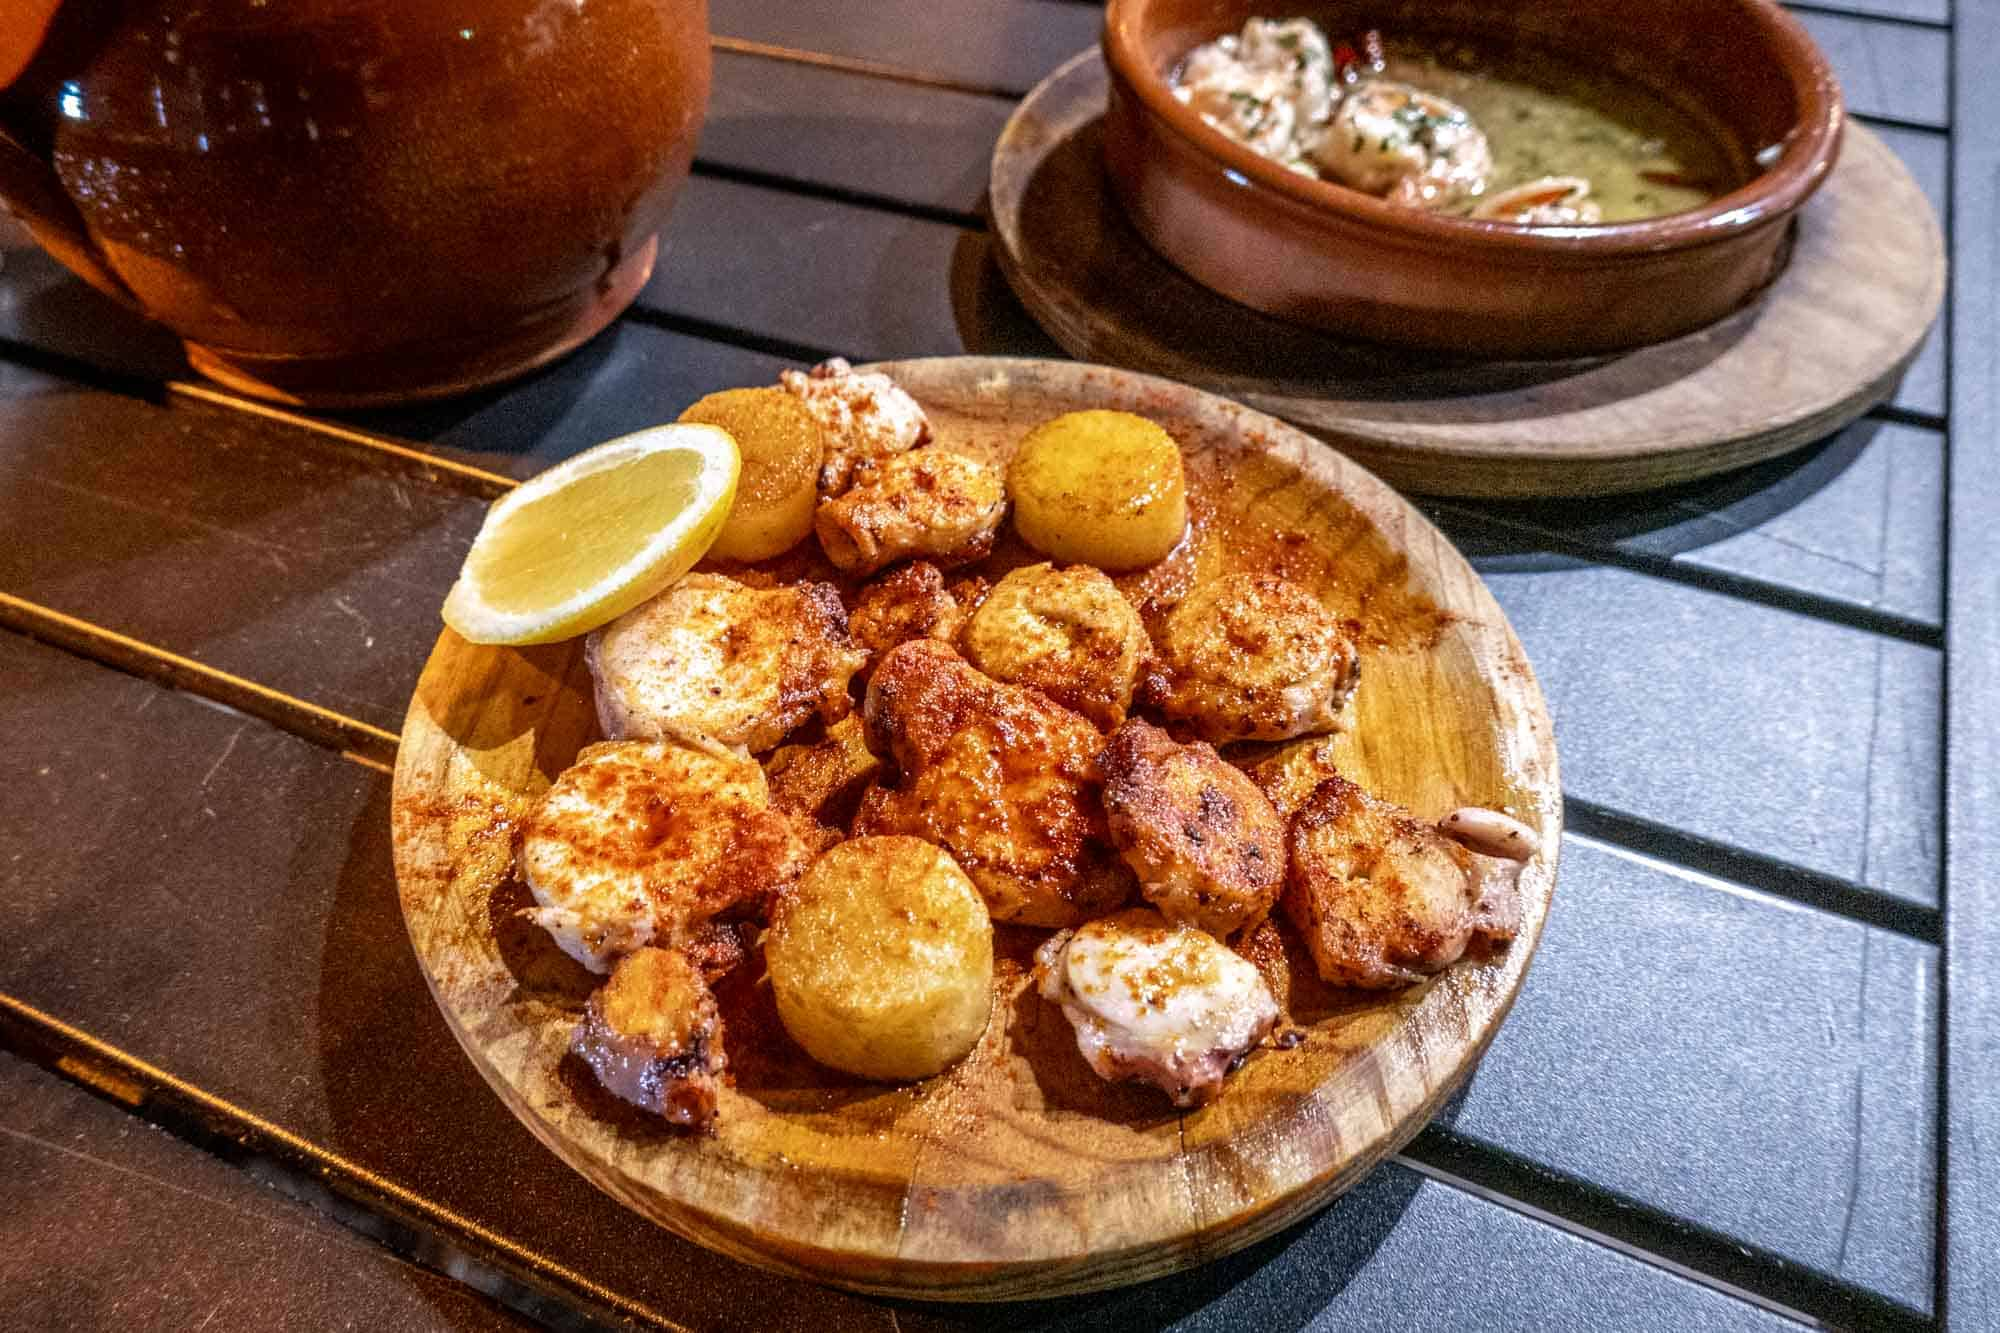 Medallions of octopus and potato on wood plate